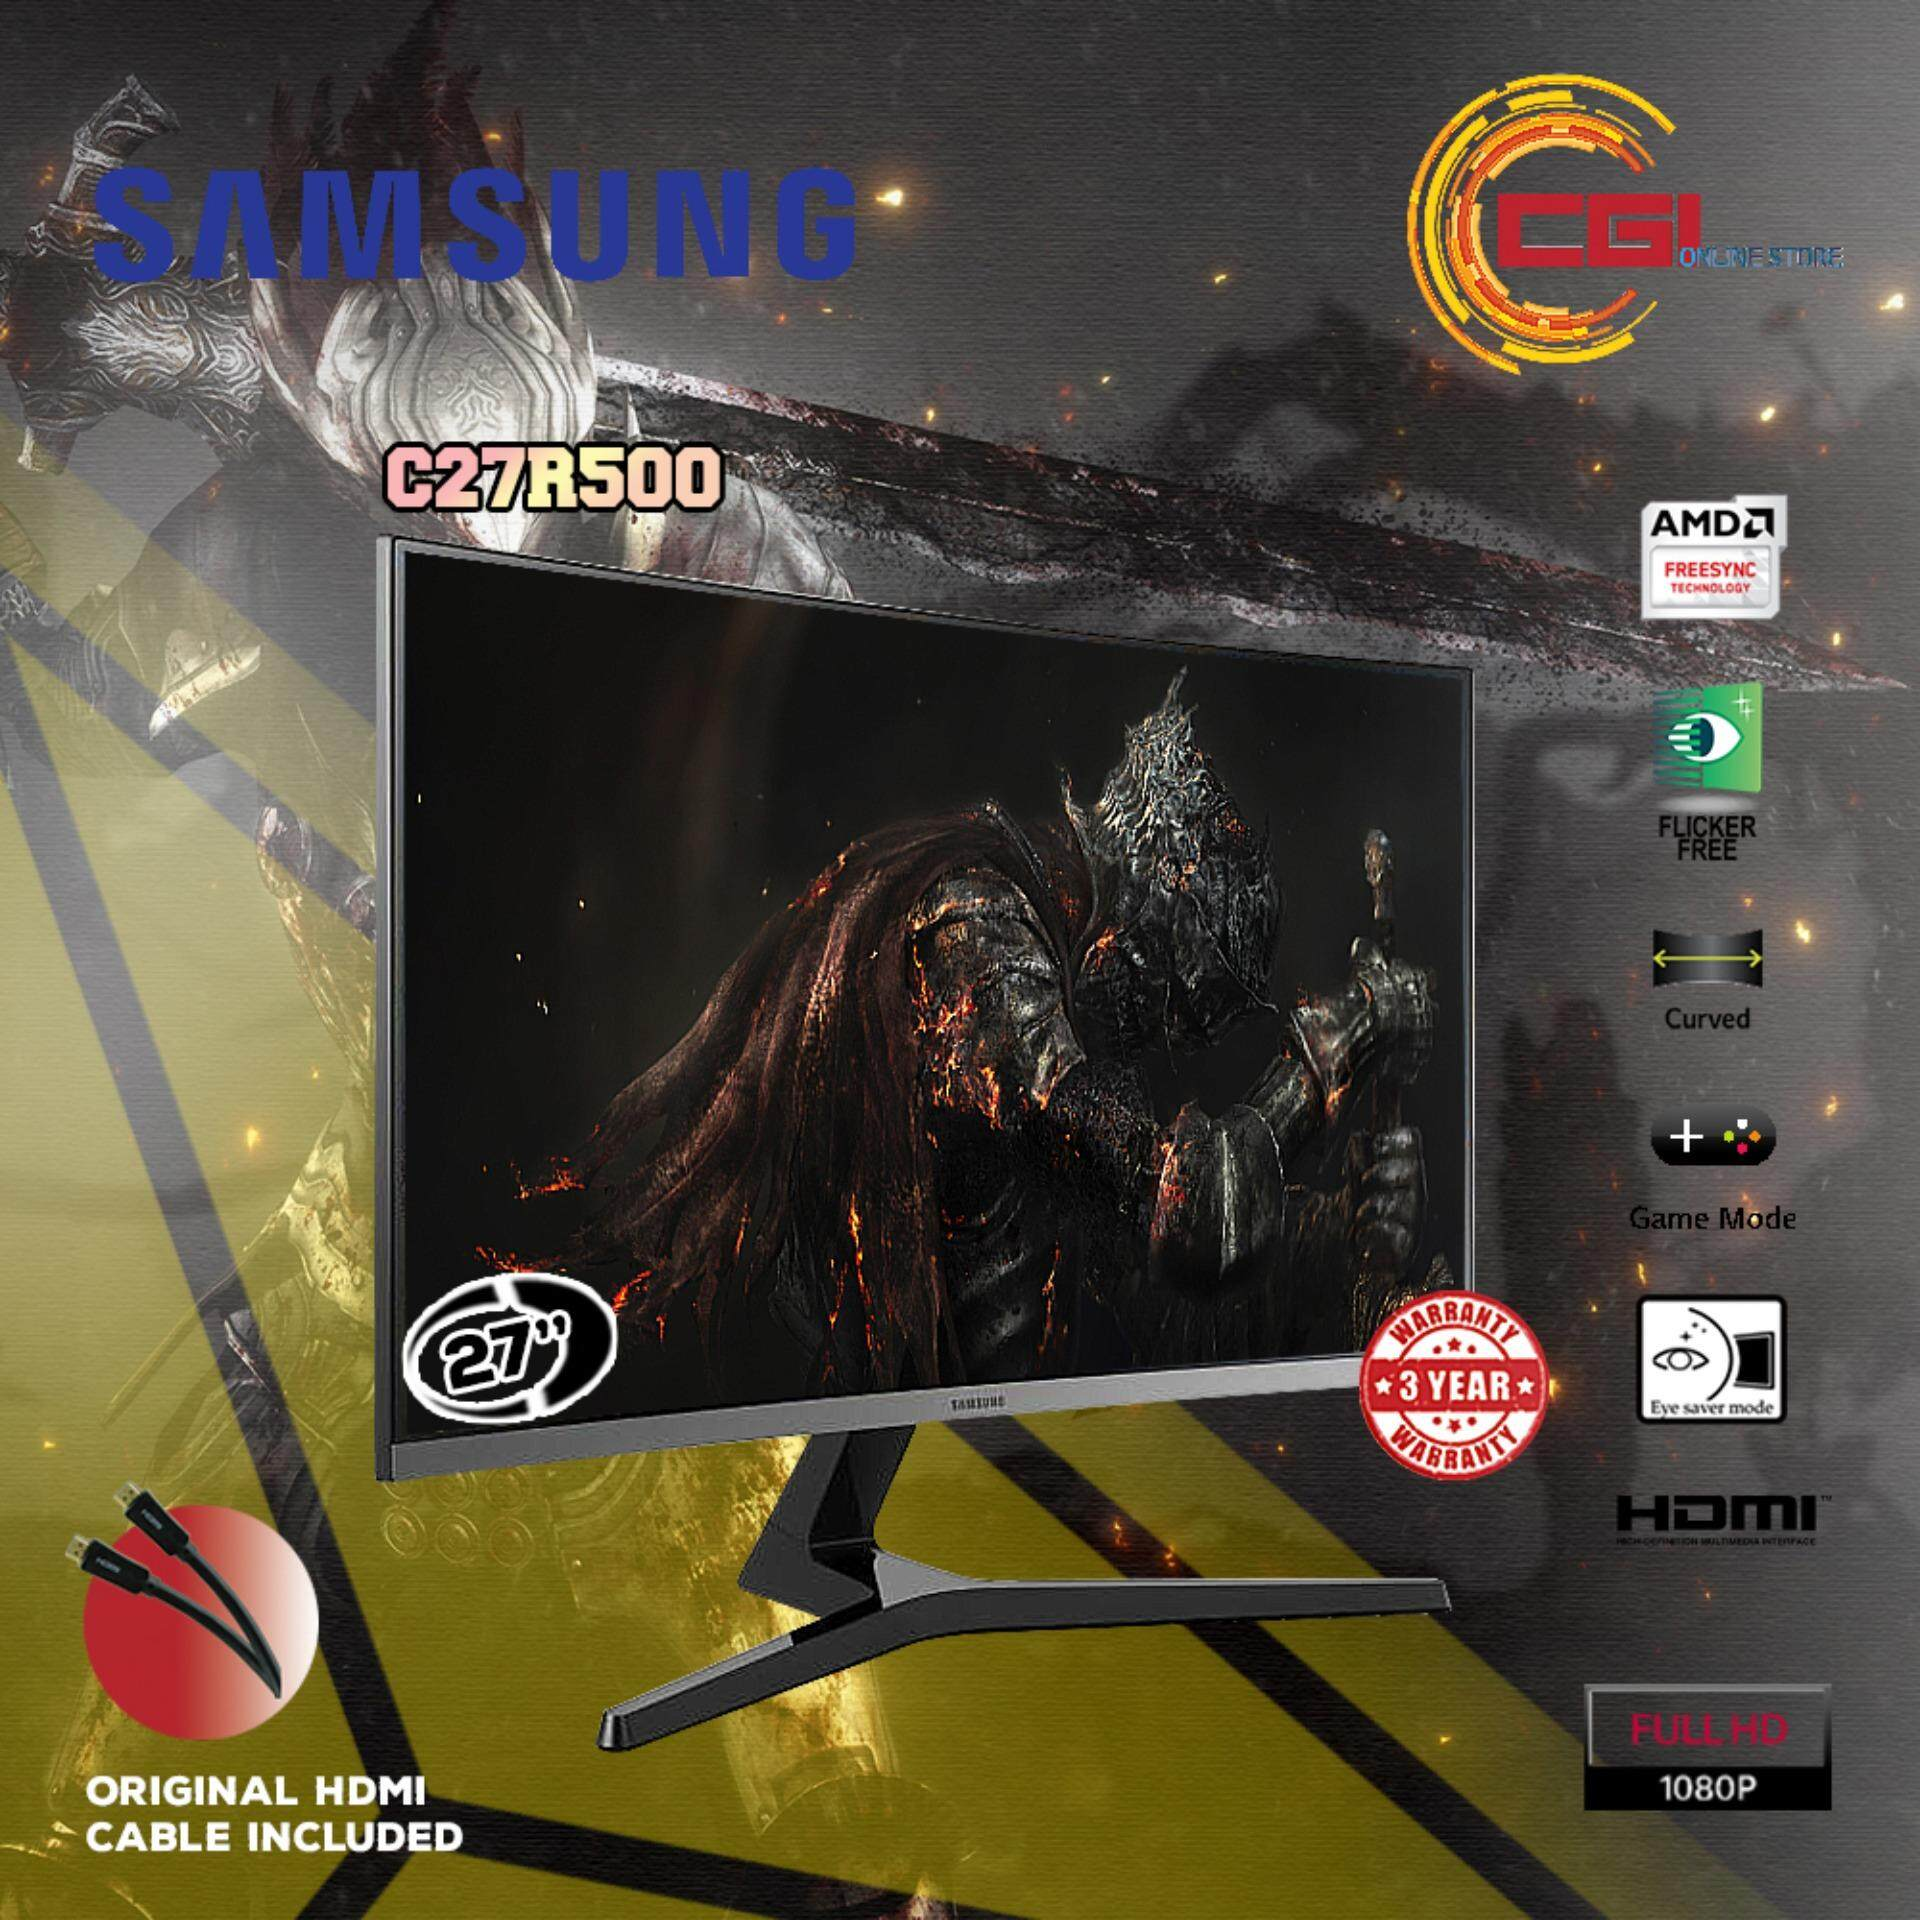 Samsung 27 LC27R500FHUXXM FHD Curved Gaming Monitor Malaysia